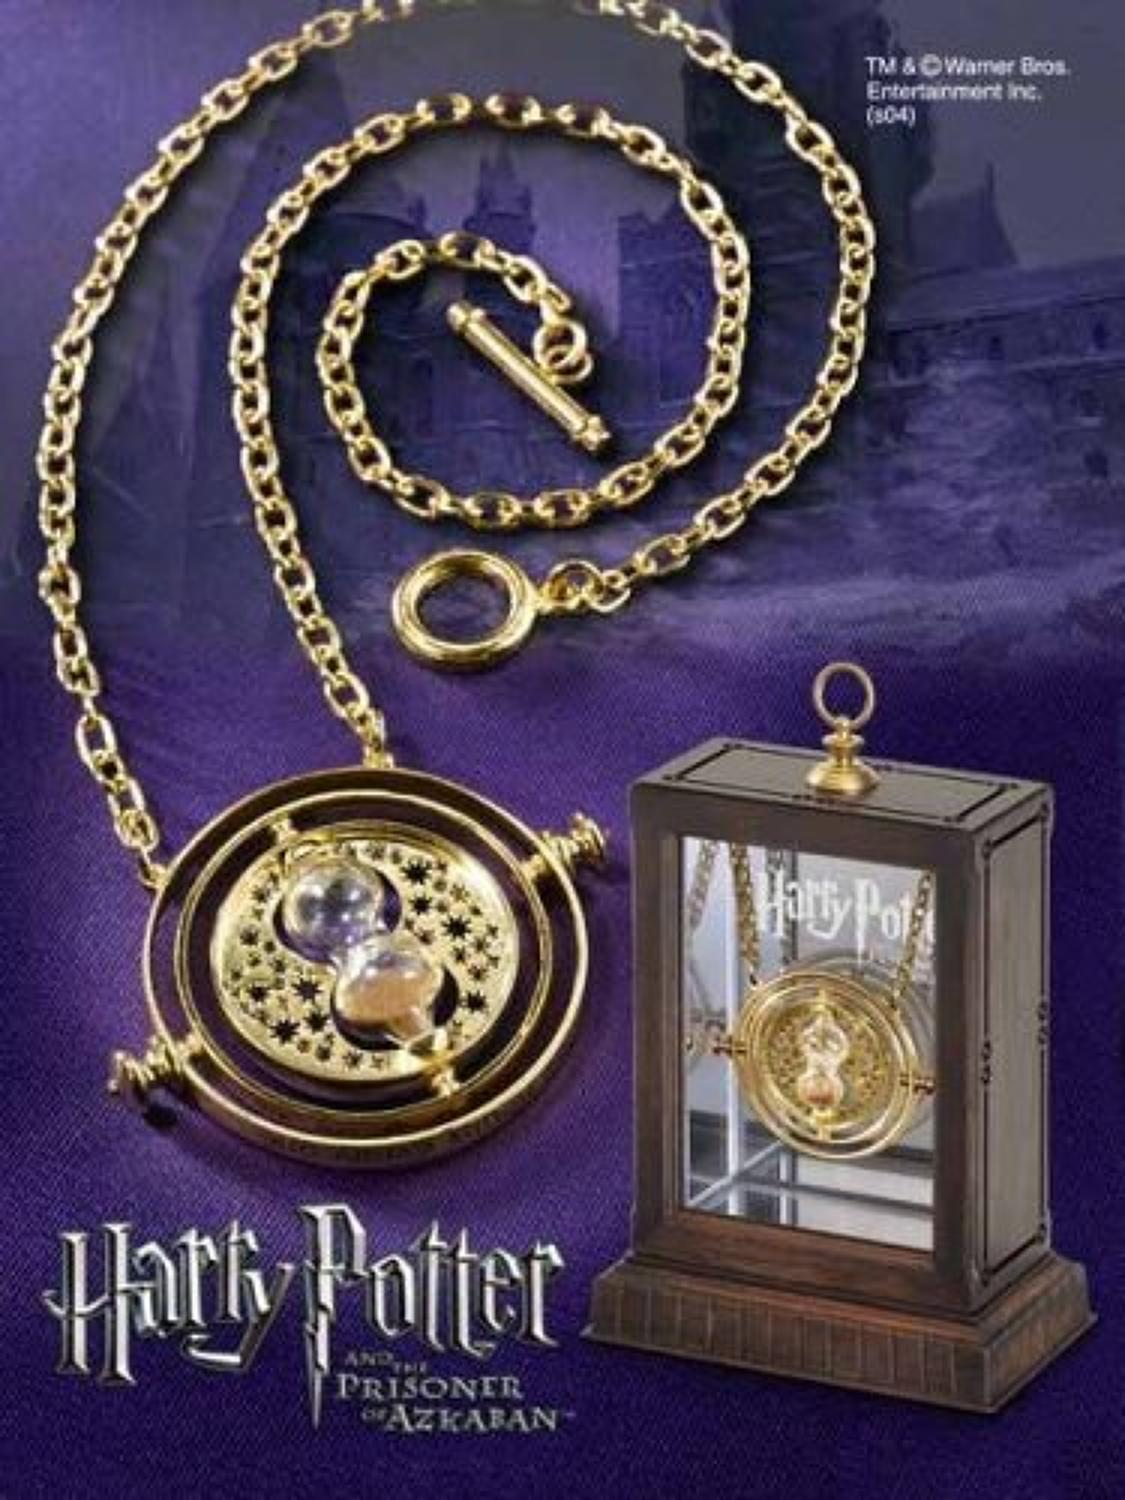 Harry Potter - Time Turner Replica